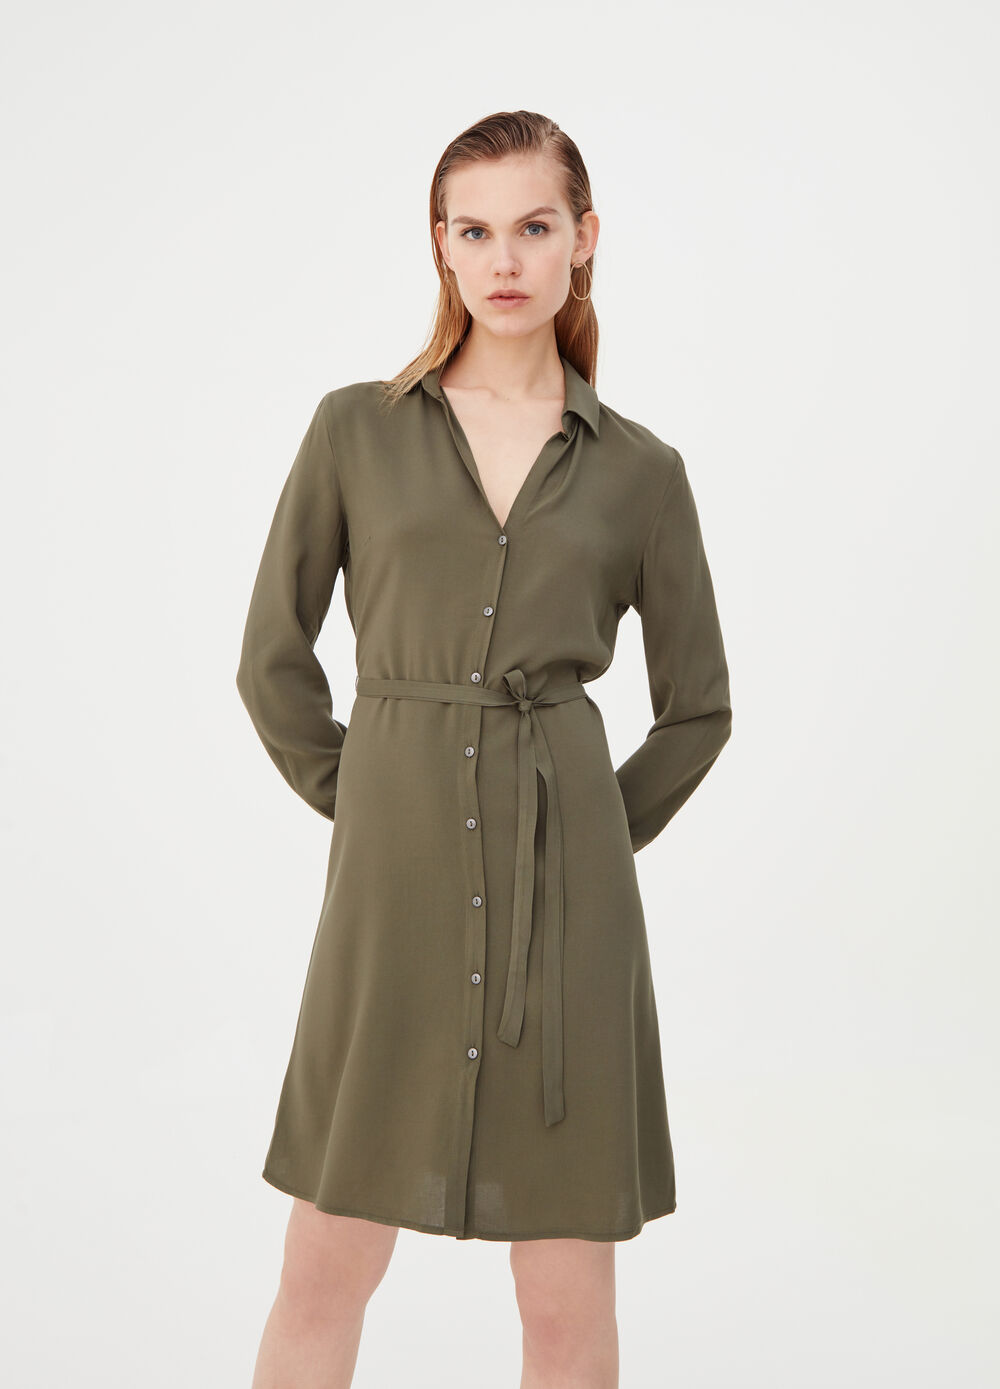 Shirt dress with polo neck and belt